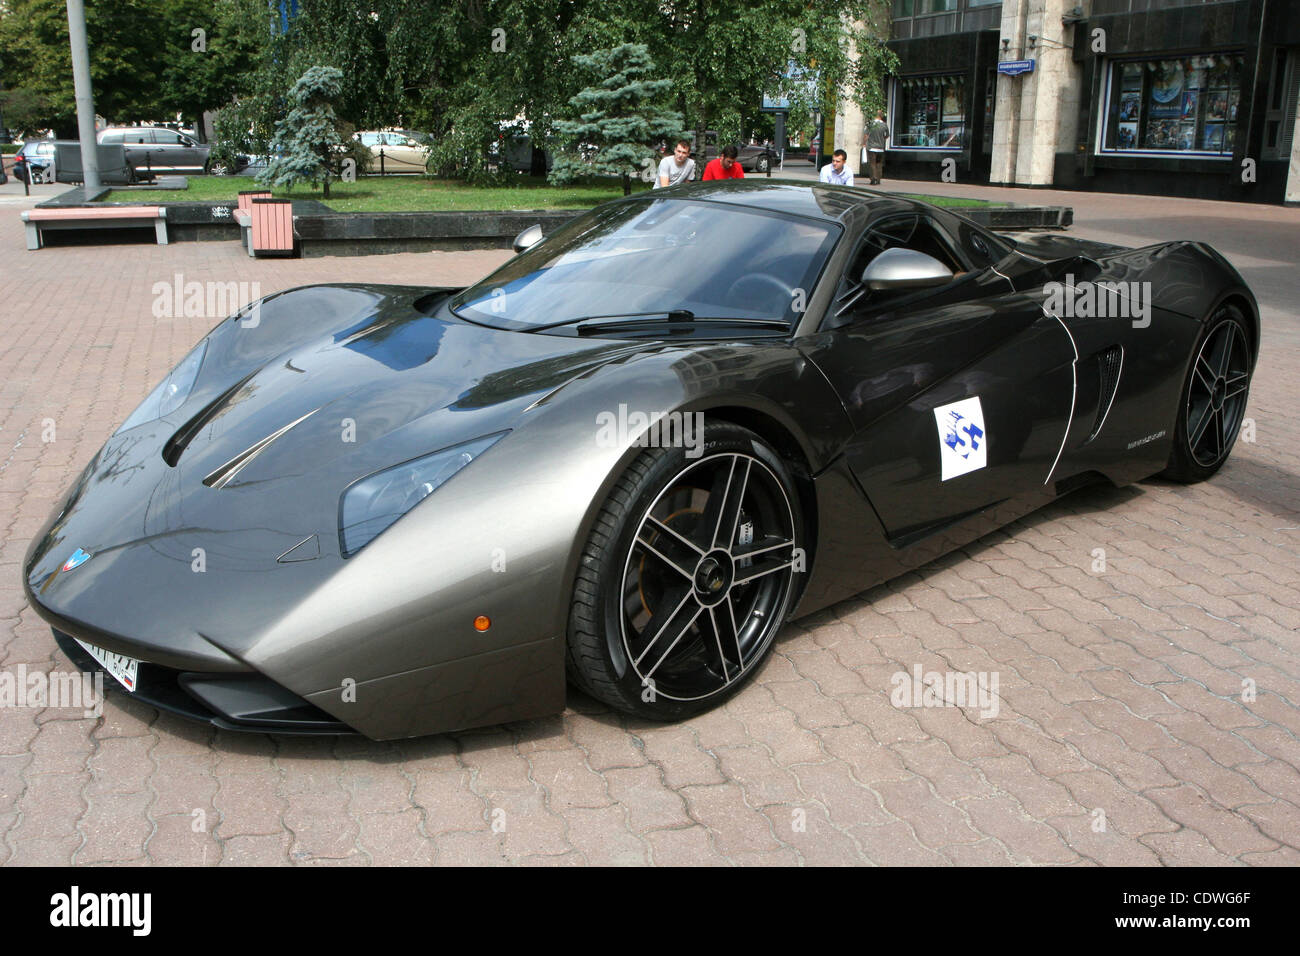 Pictured: First Russian Supercar Marussia Sportcar